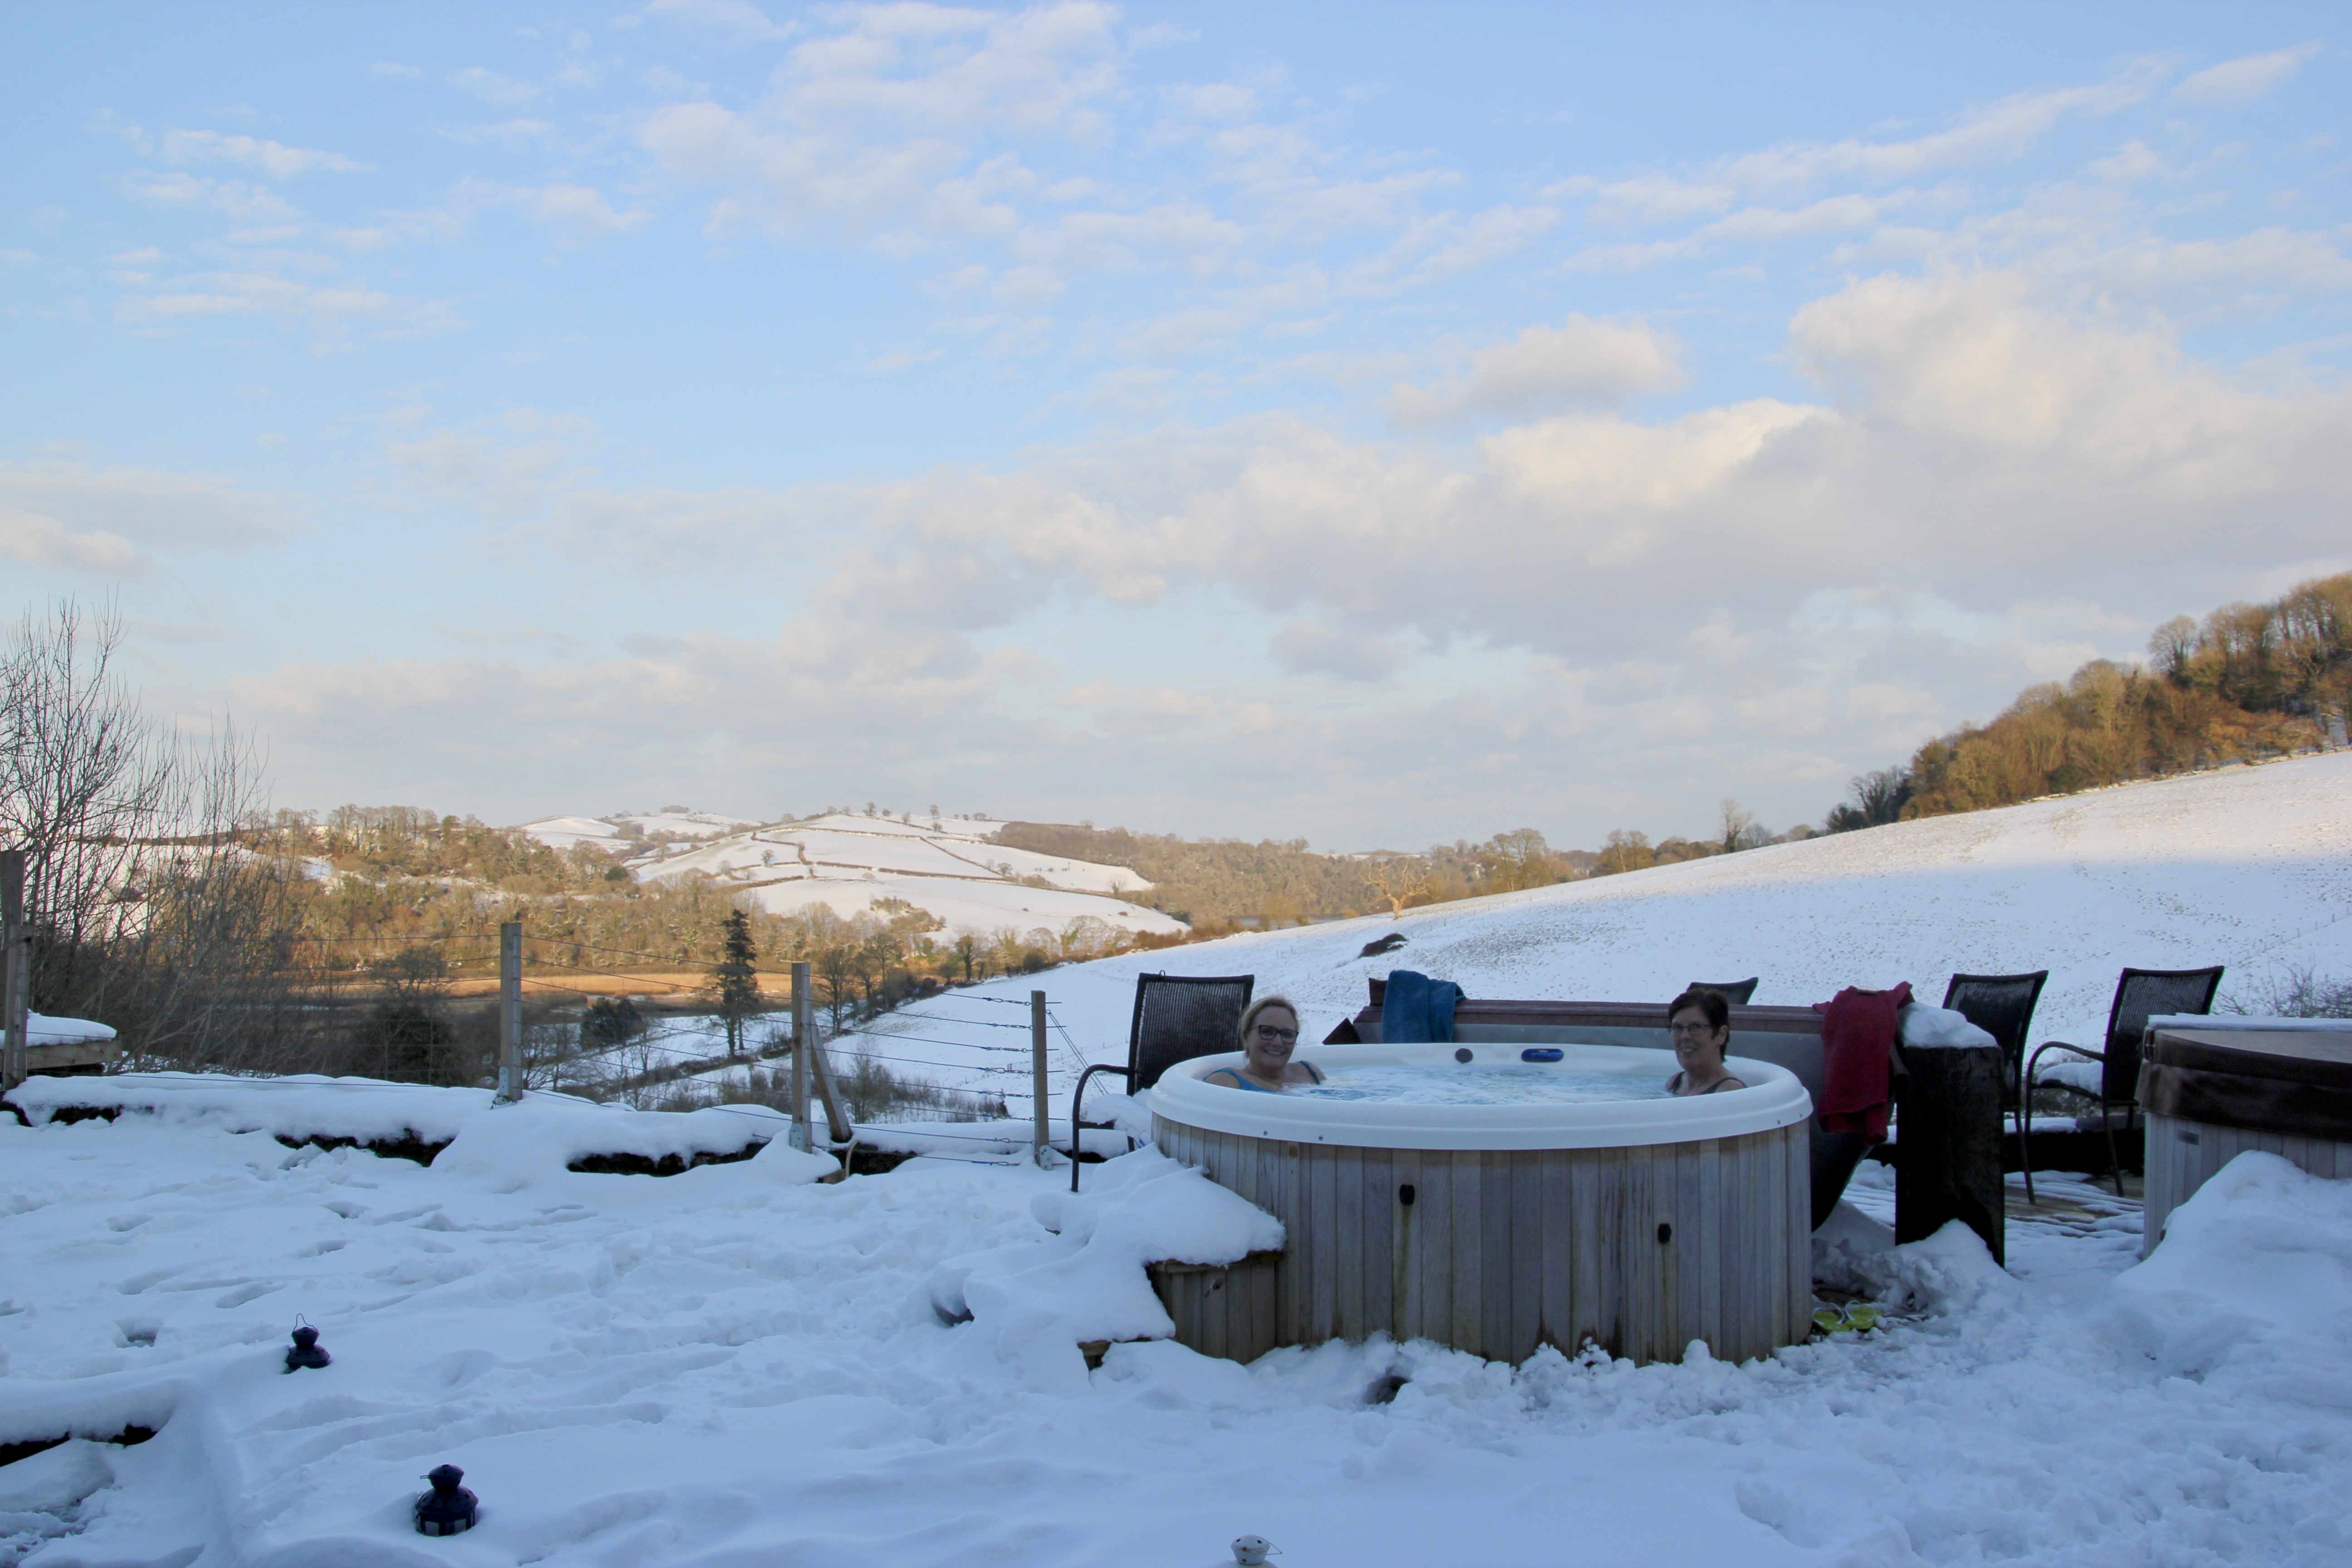 sewing retreat, hot tub, snow, devon, totnes